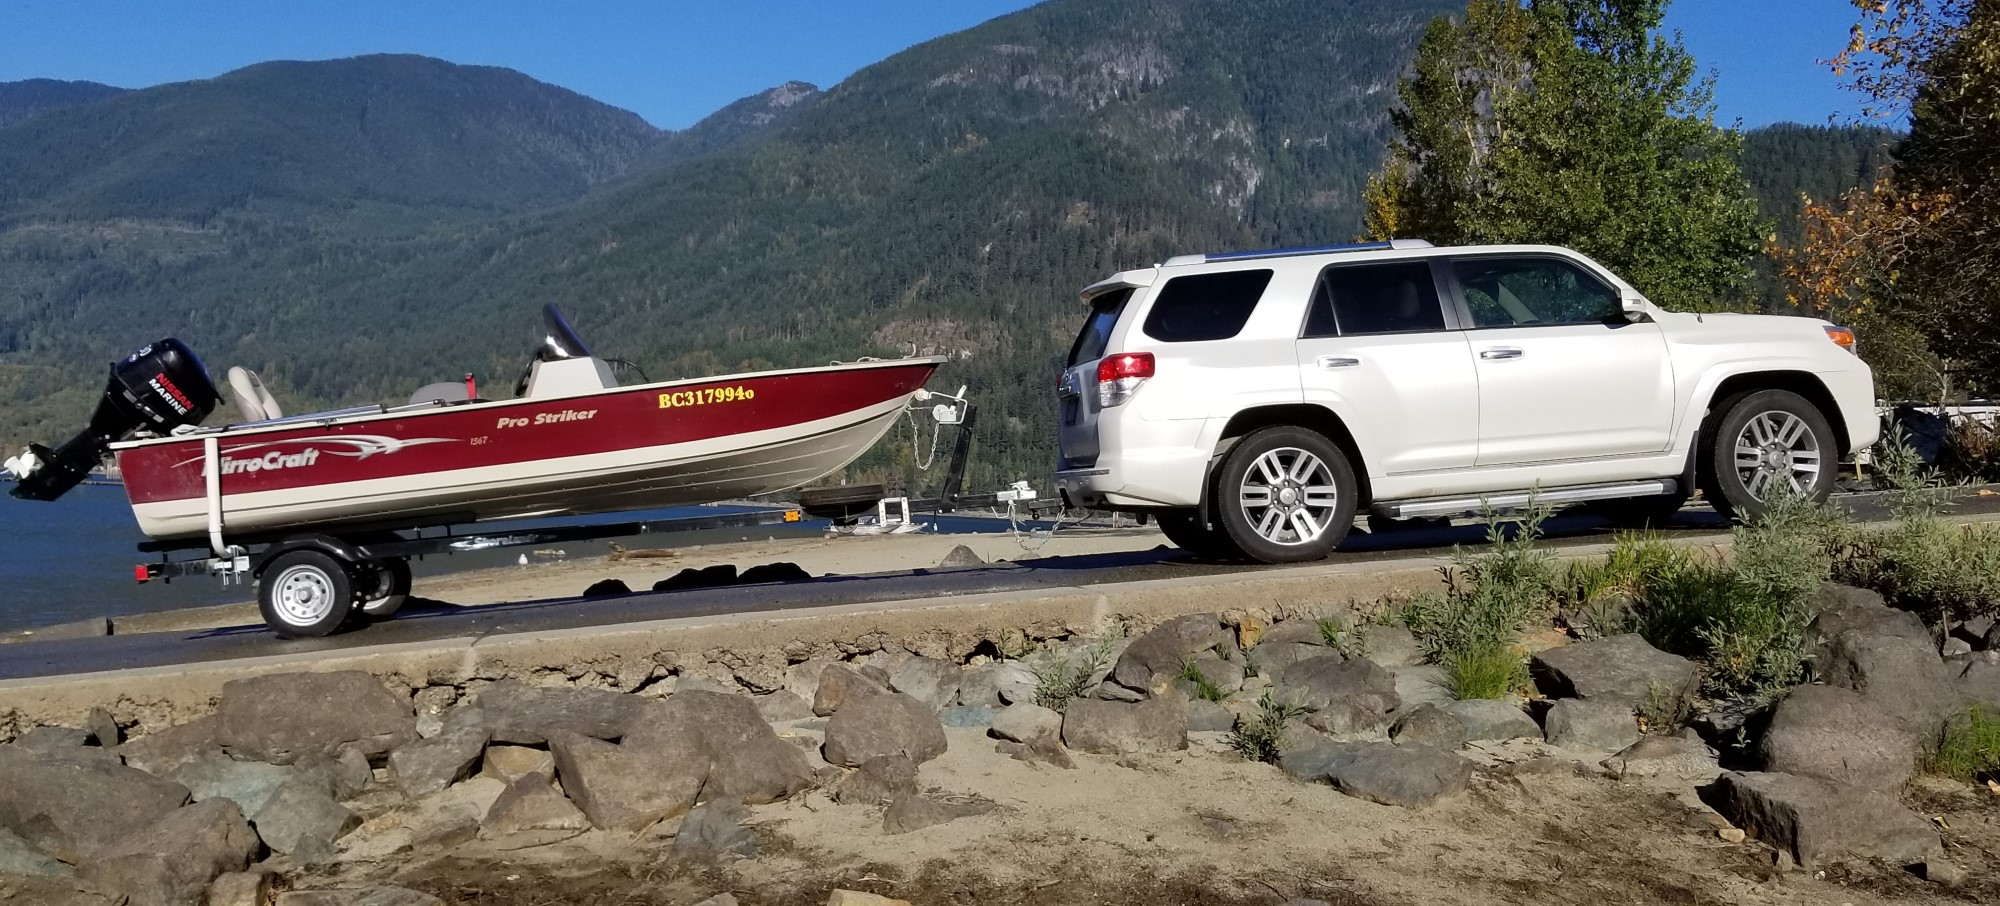 Boat Ramp Kilby Campground - J Penny